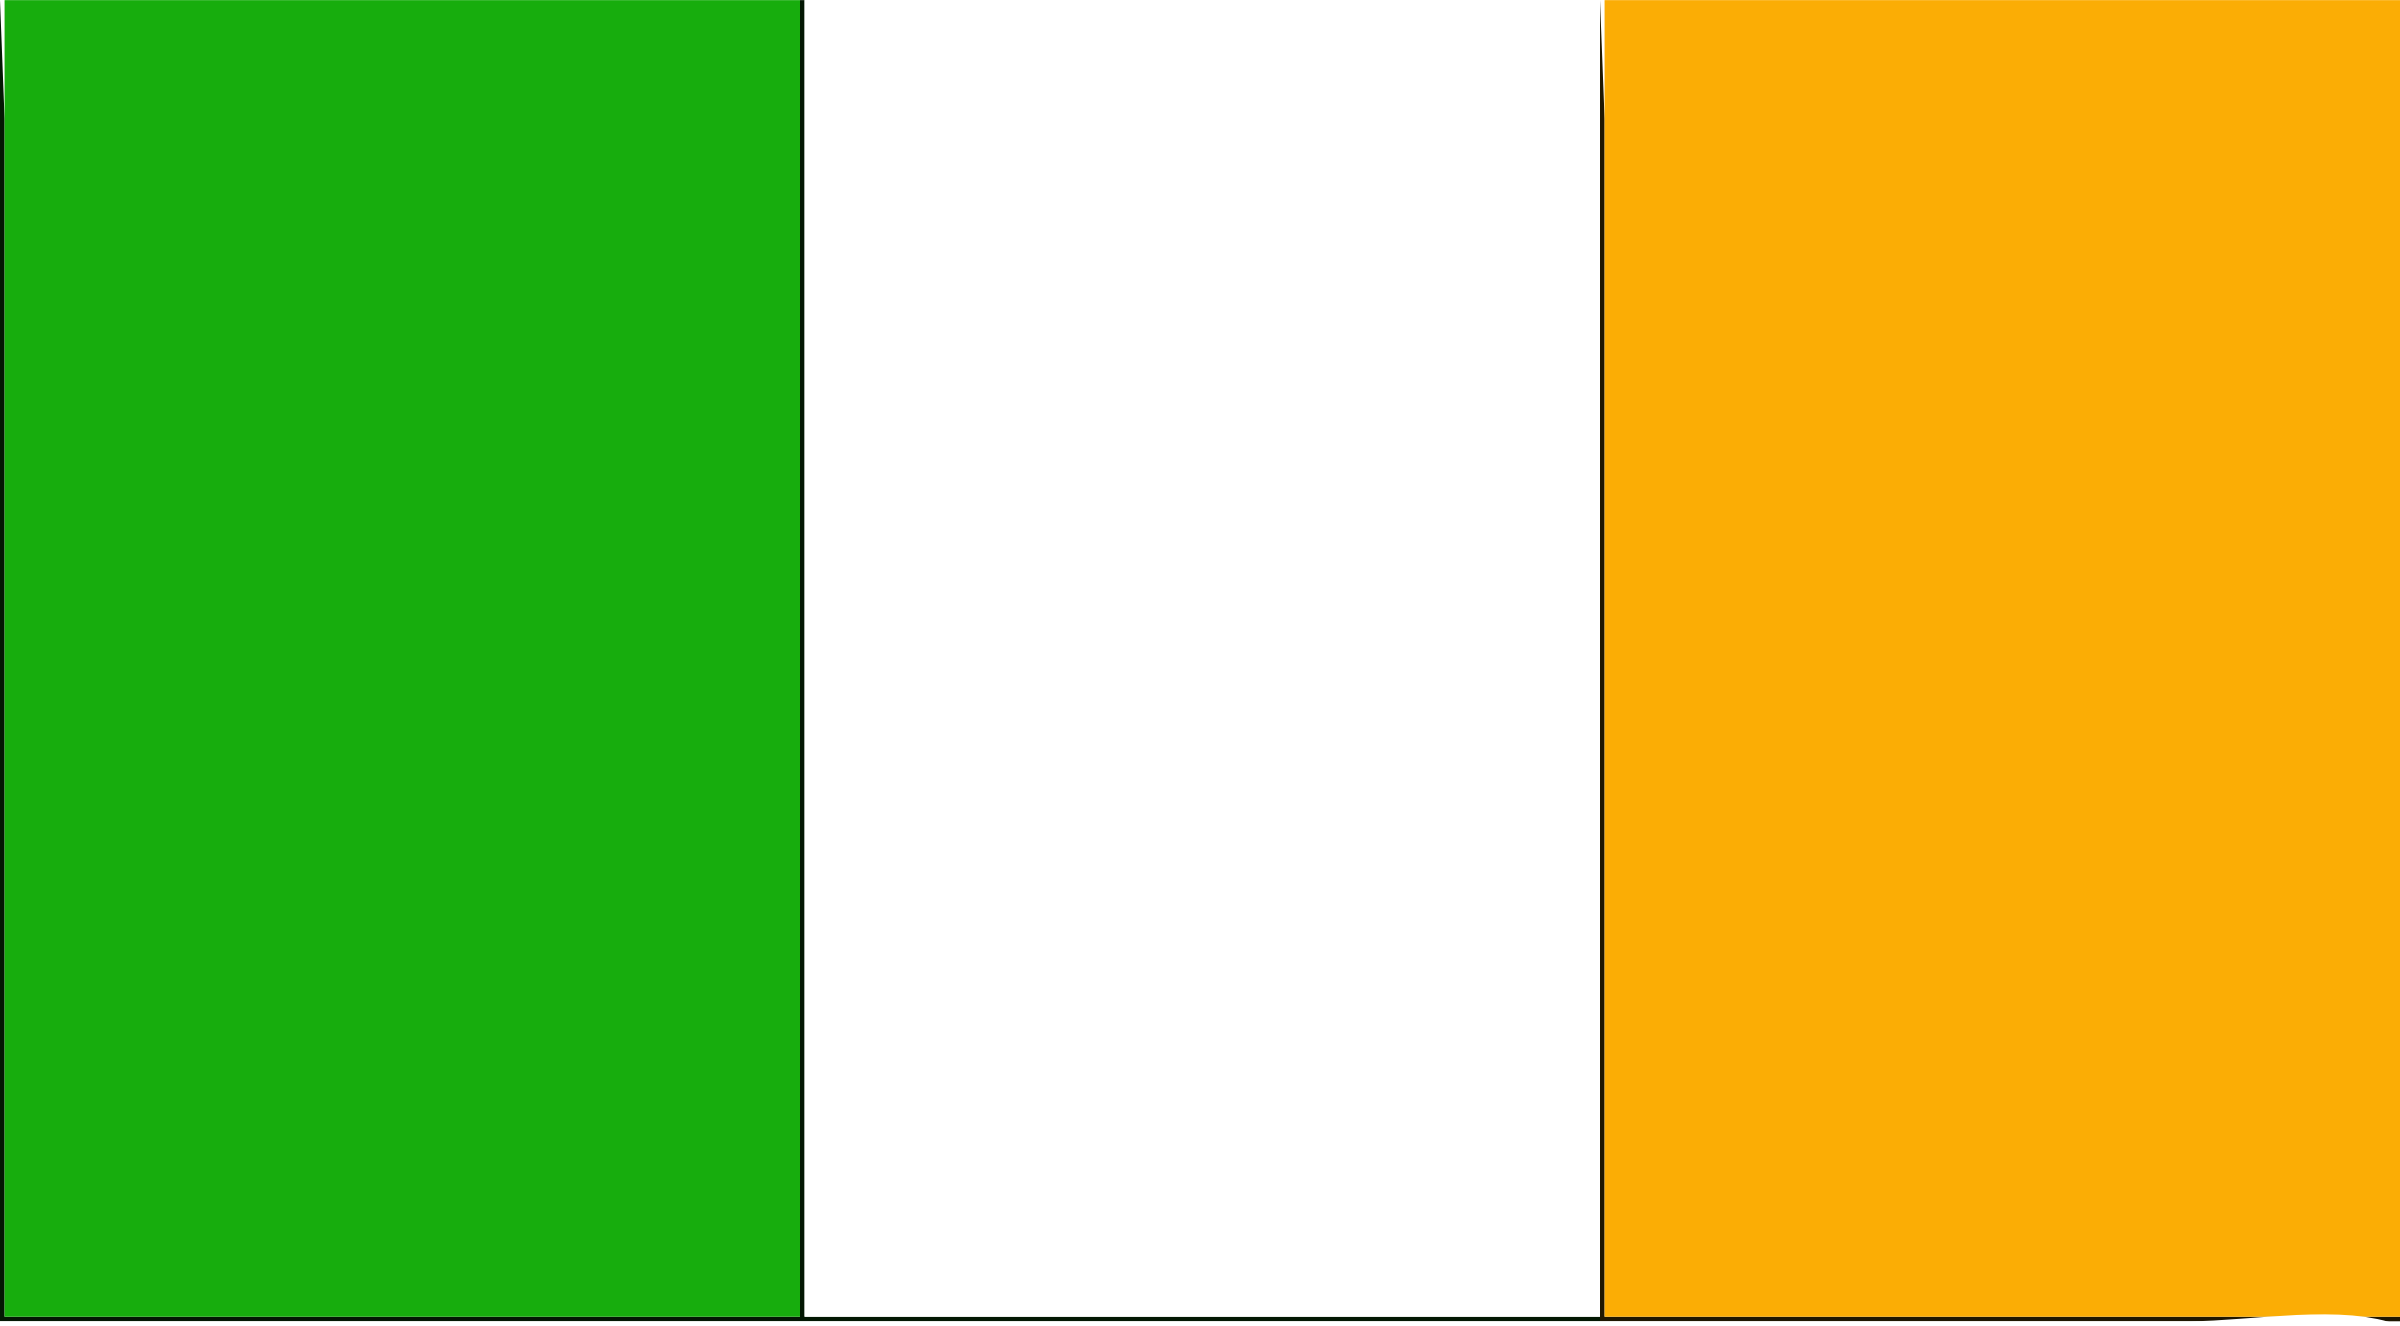 Flag of Ireland by Joesph